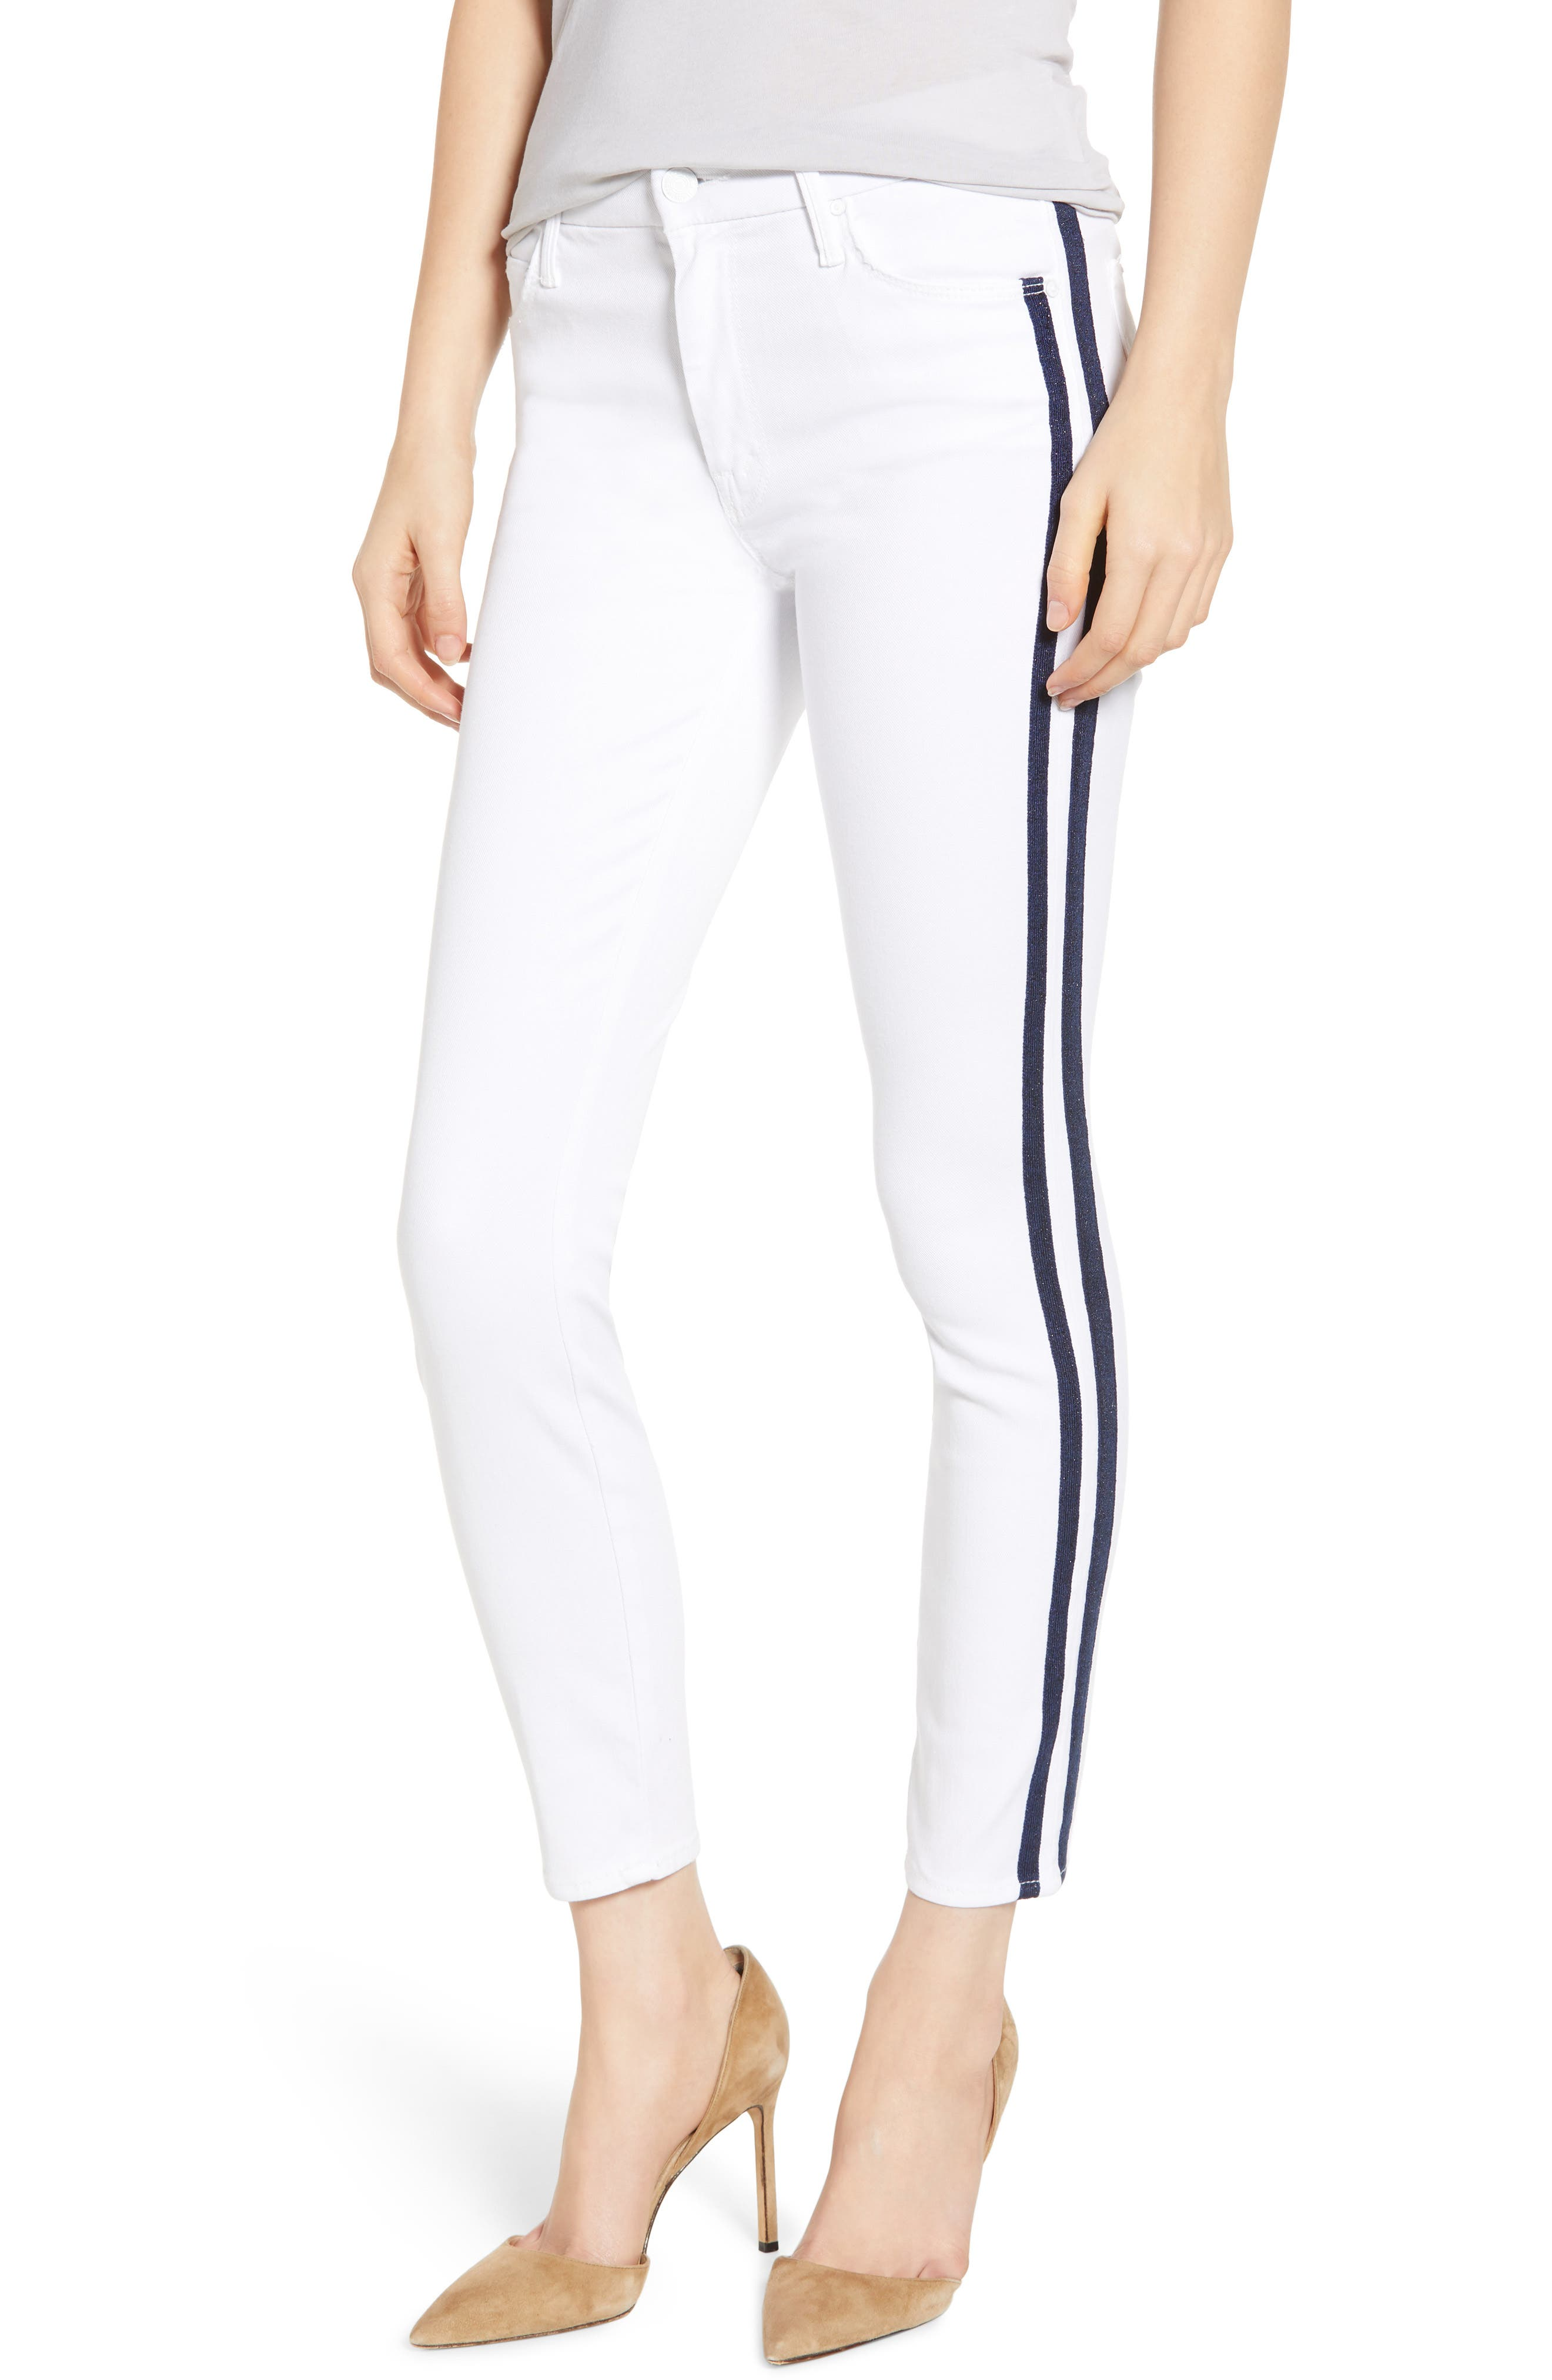 MOTHER, The Looker Stripe Ankle Skinny Jeans, Main thumbnail 1, color, 100